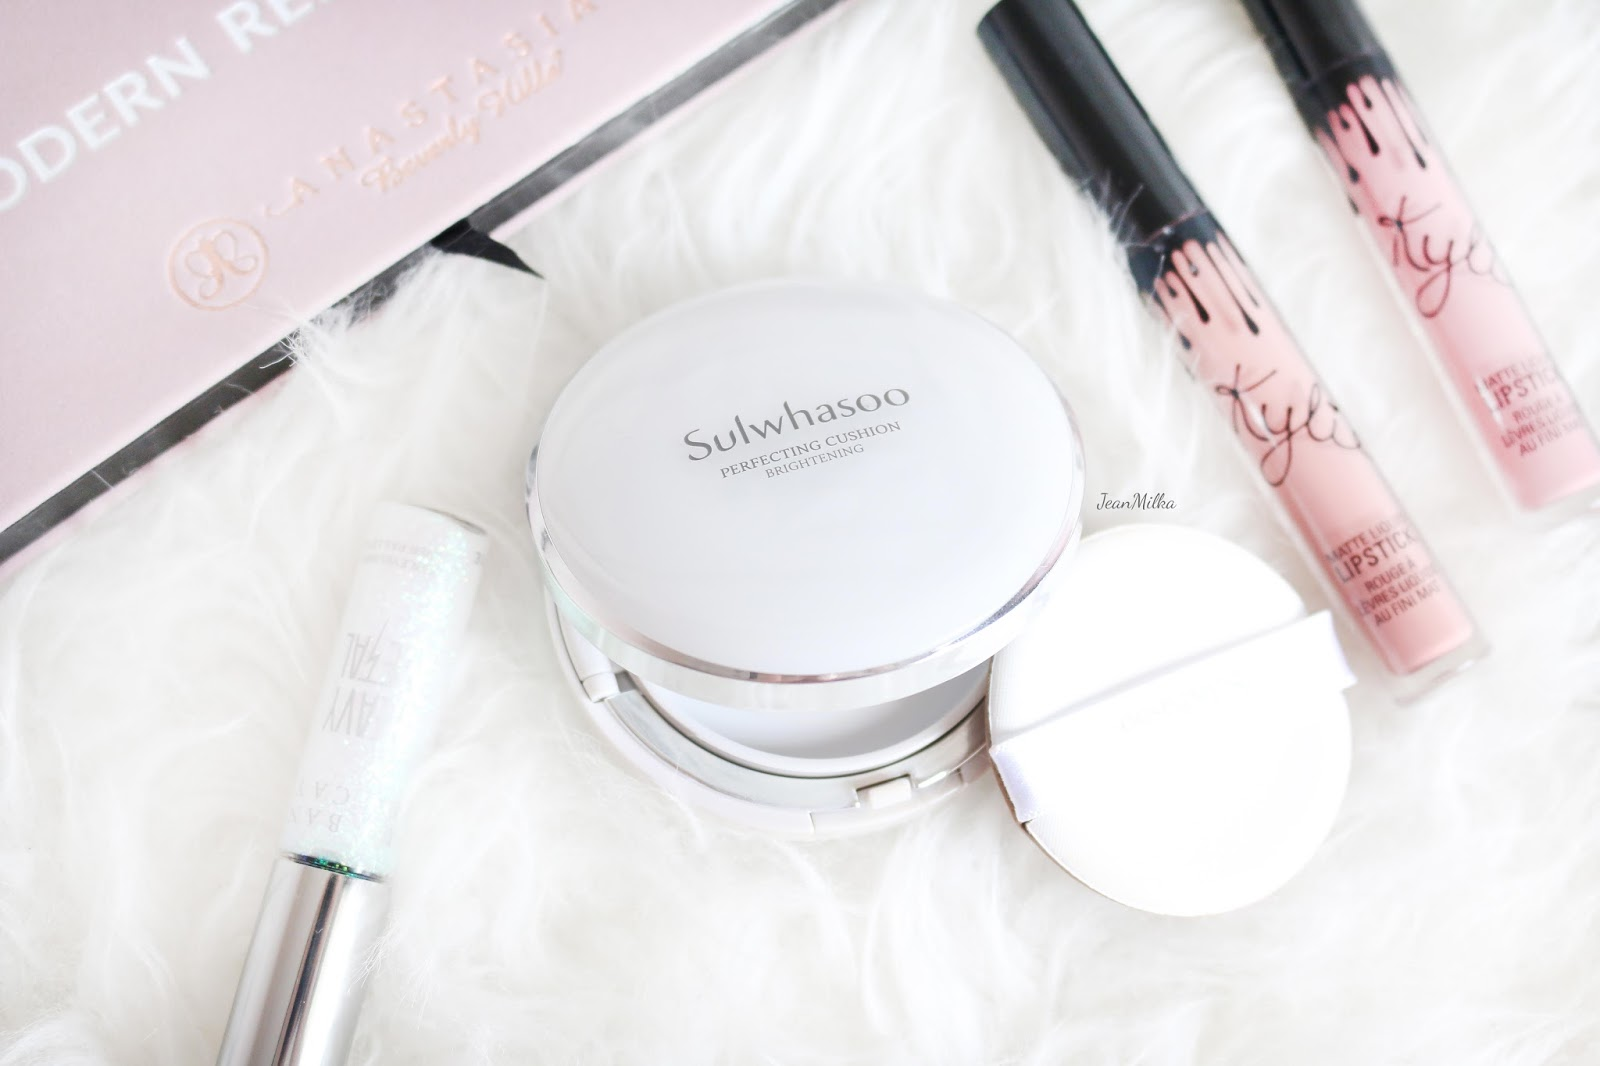 review sulwhasoo, sulwhasoo cushion, sulwhasoo perfecting cushion, review, korean makeup, korean cushion, cushion, cushion foundation